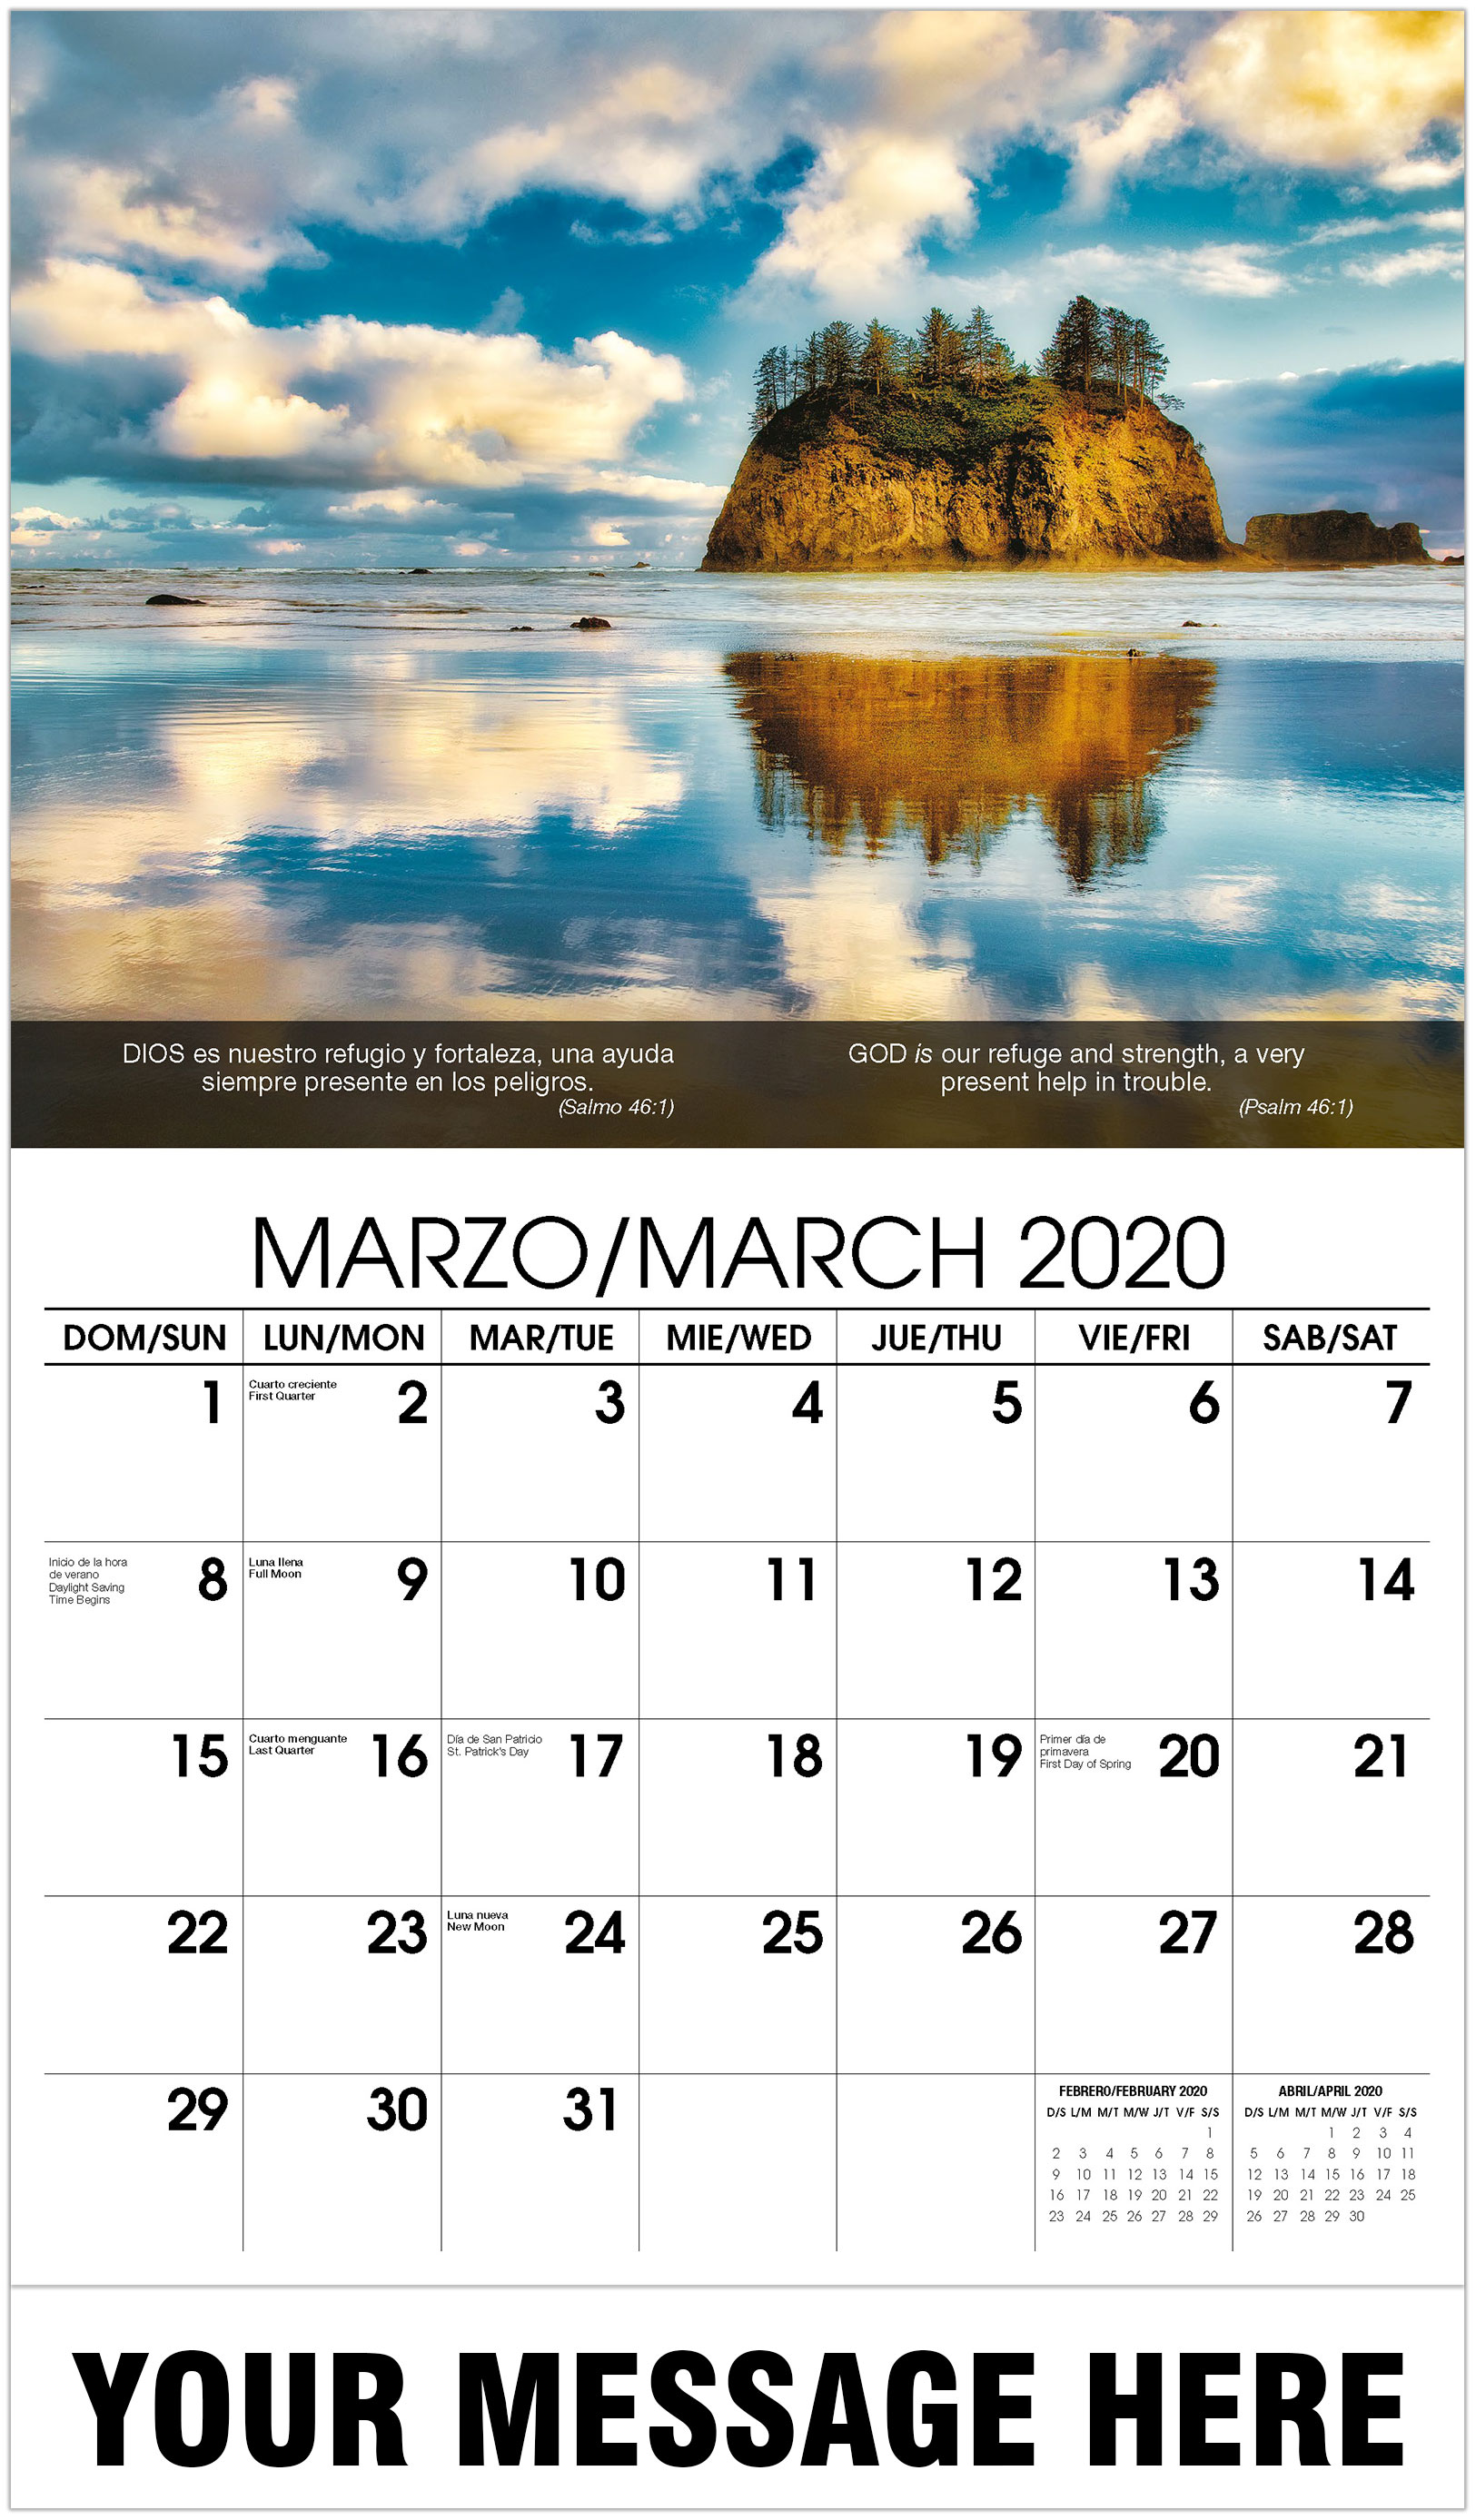 2020 Bilingual Promotional Calendar - Lake With Rock Hill In Middle - March